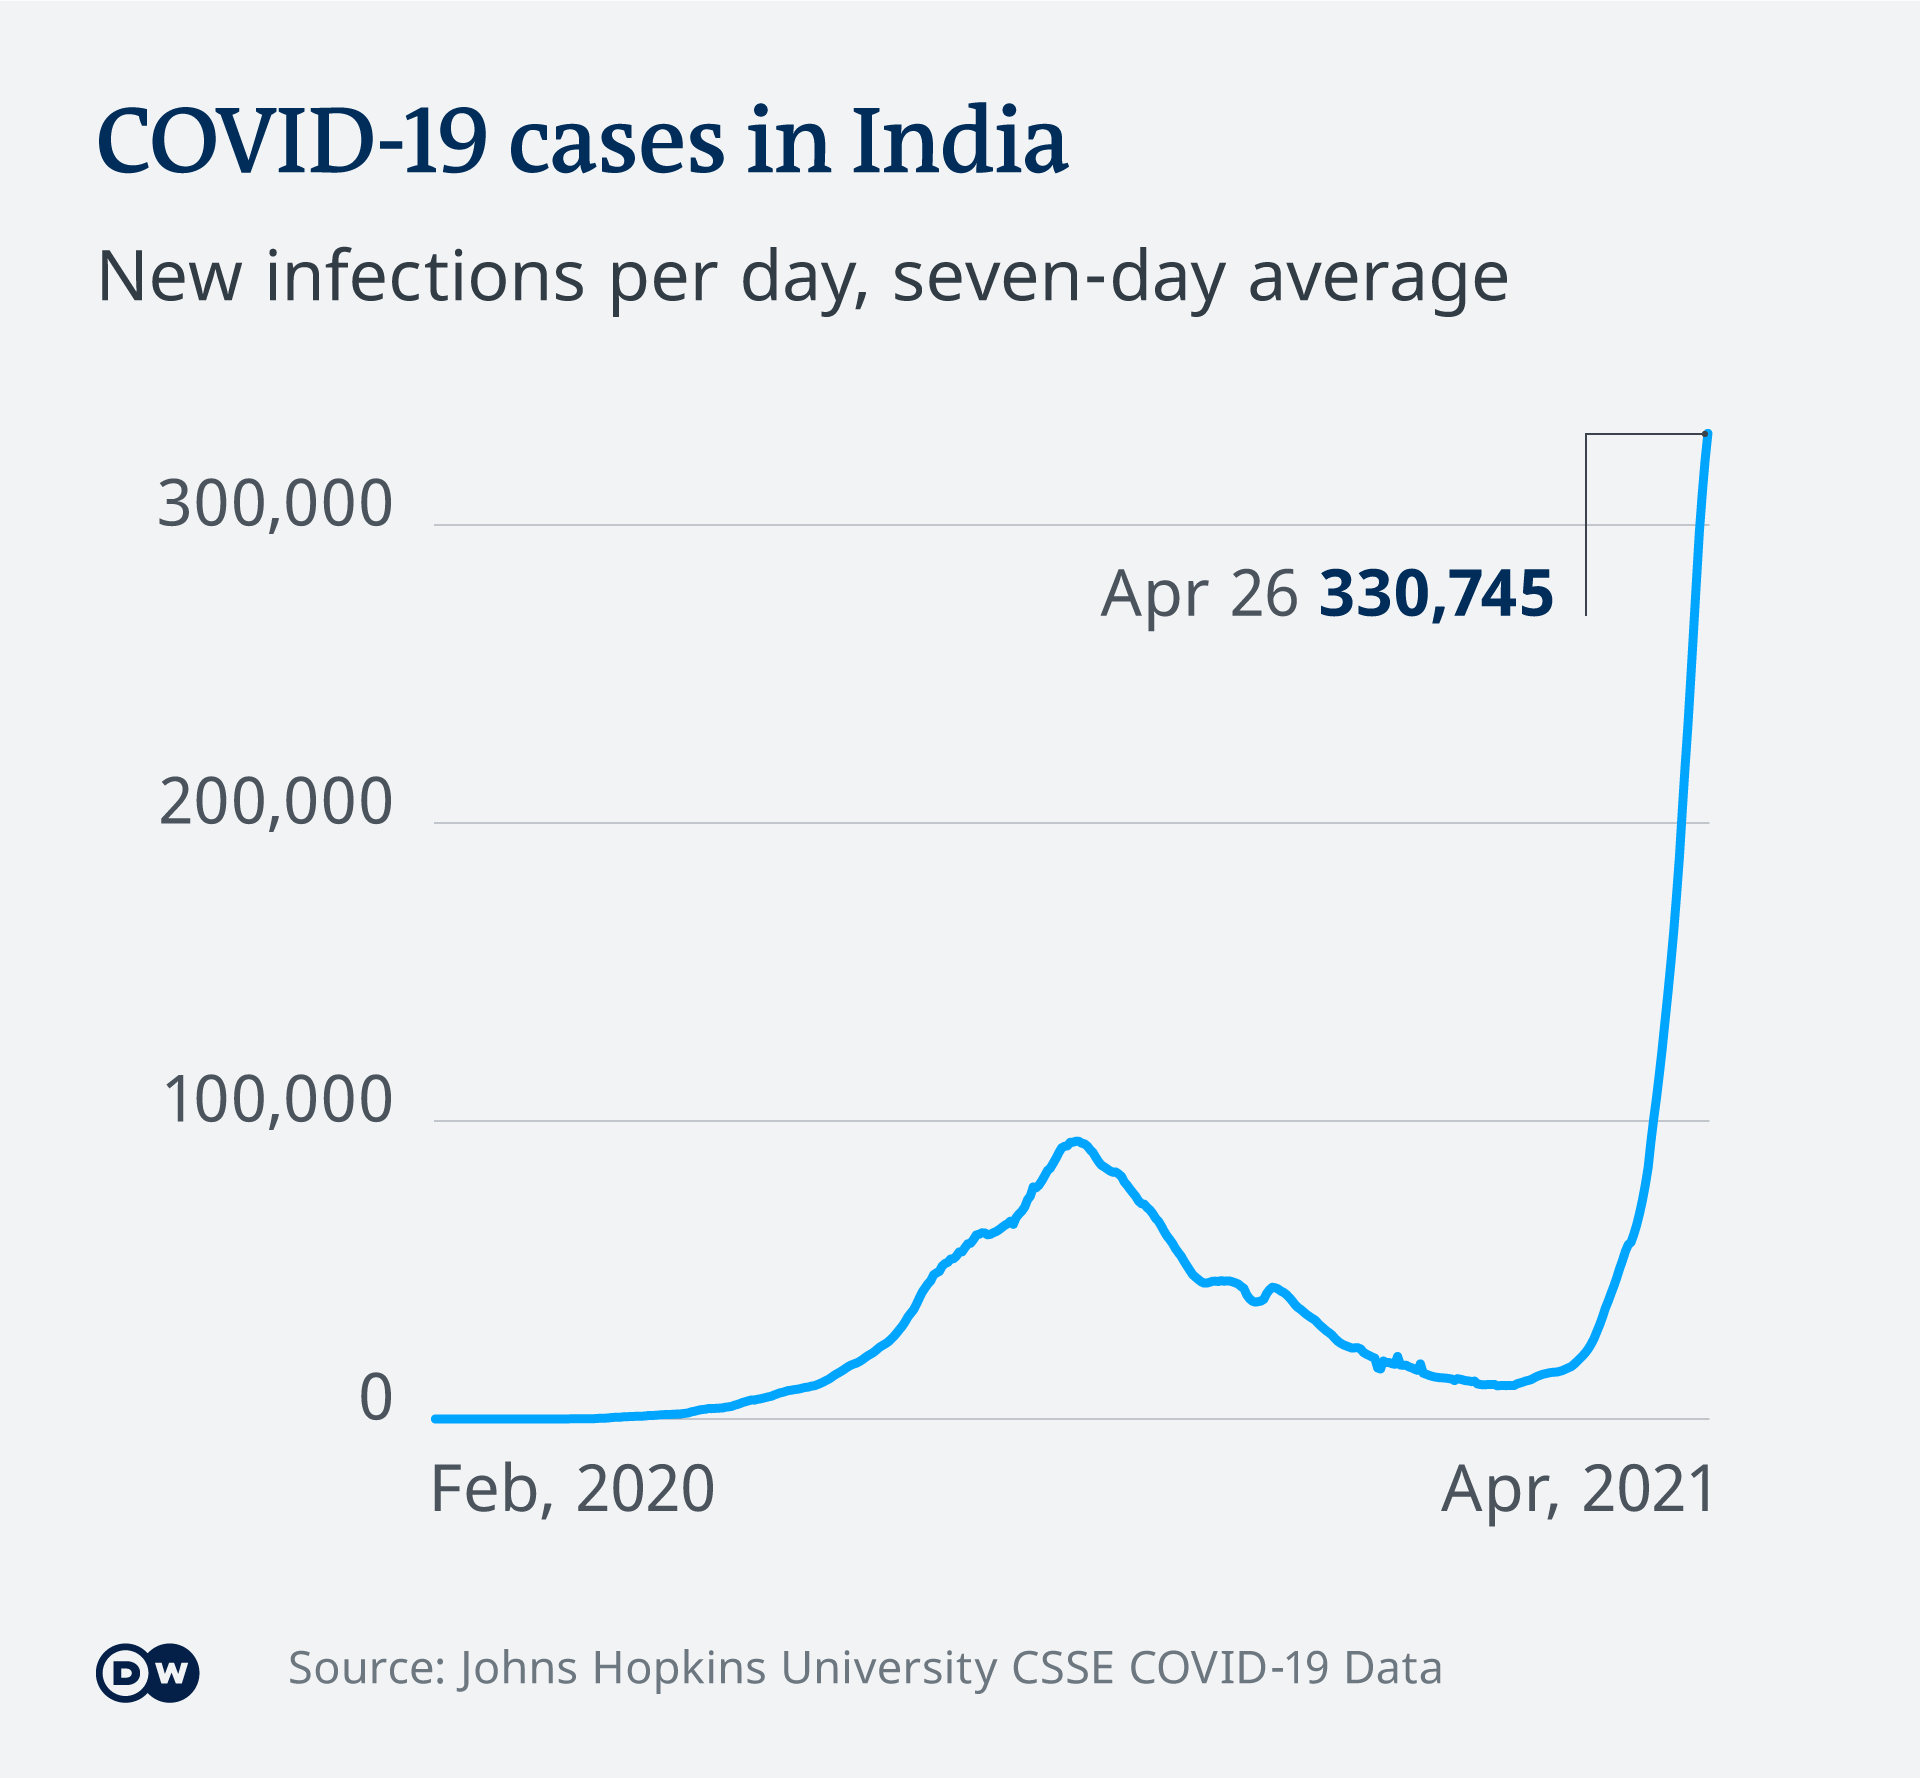 Graphic: COVID-19 new infections in India